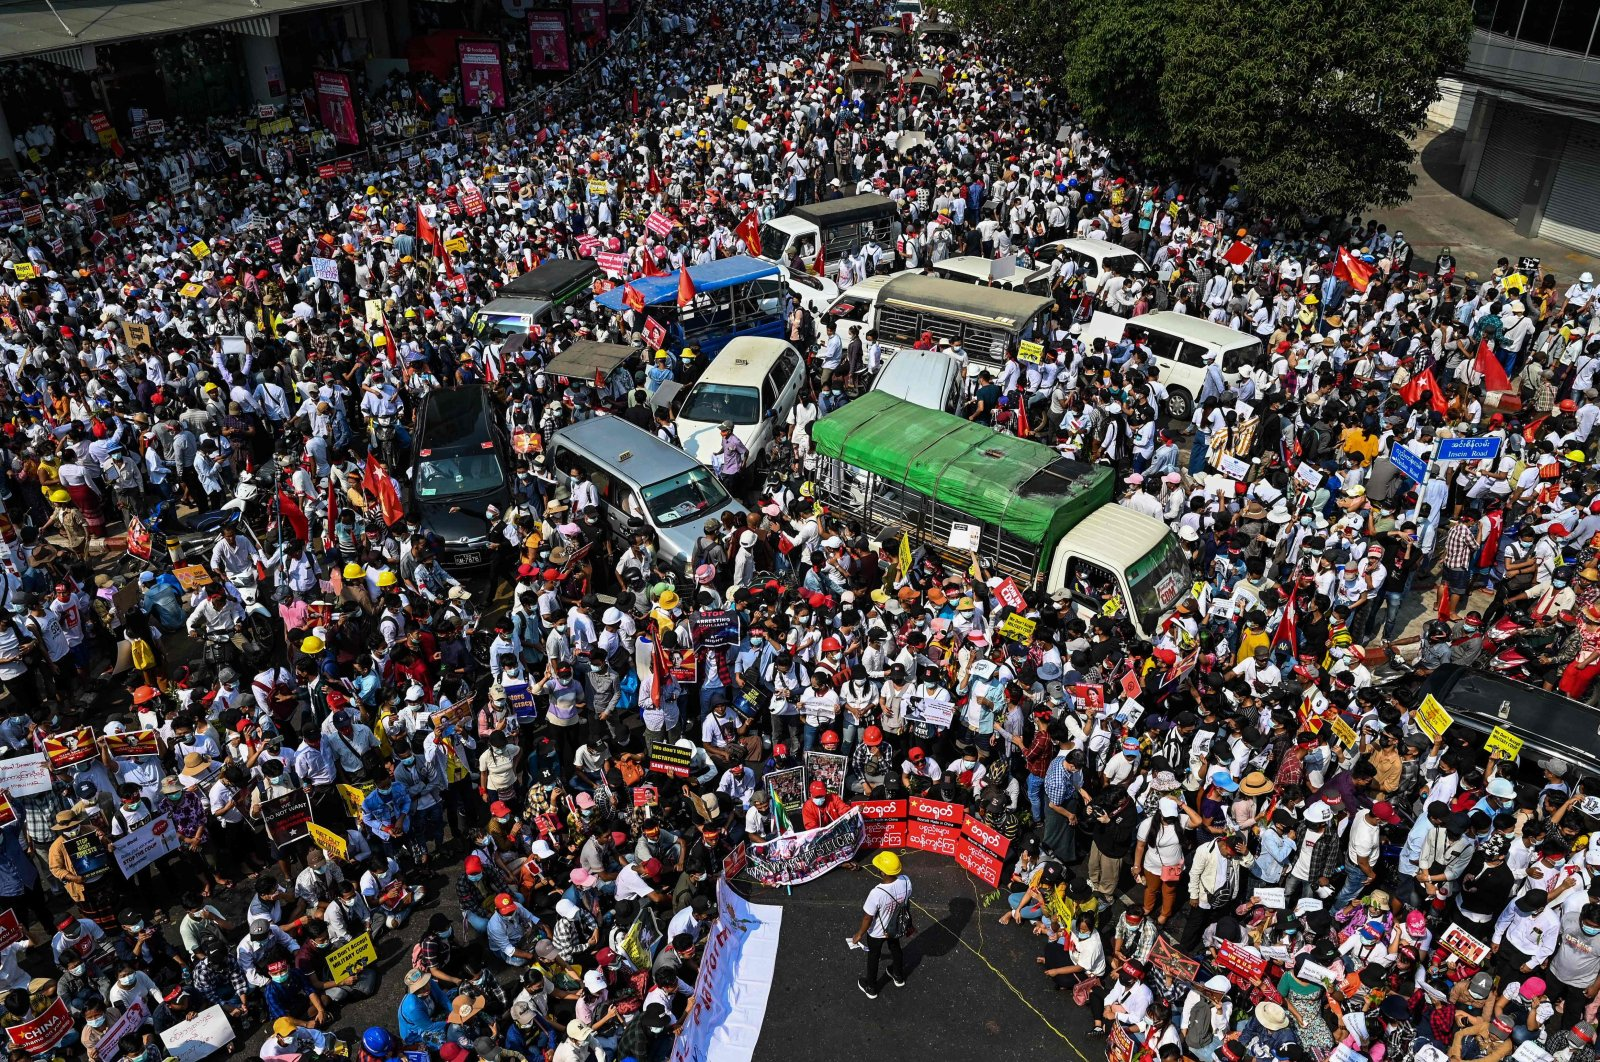 Protesters mass around vehicles as they block roads during a demonstration against the military coup in Yangon on Feb. 22, 2021. (AFP Photo)